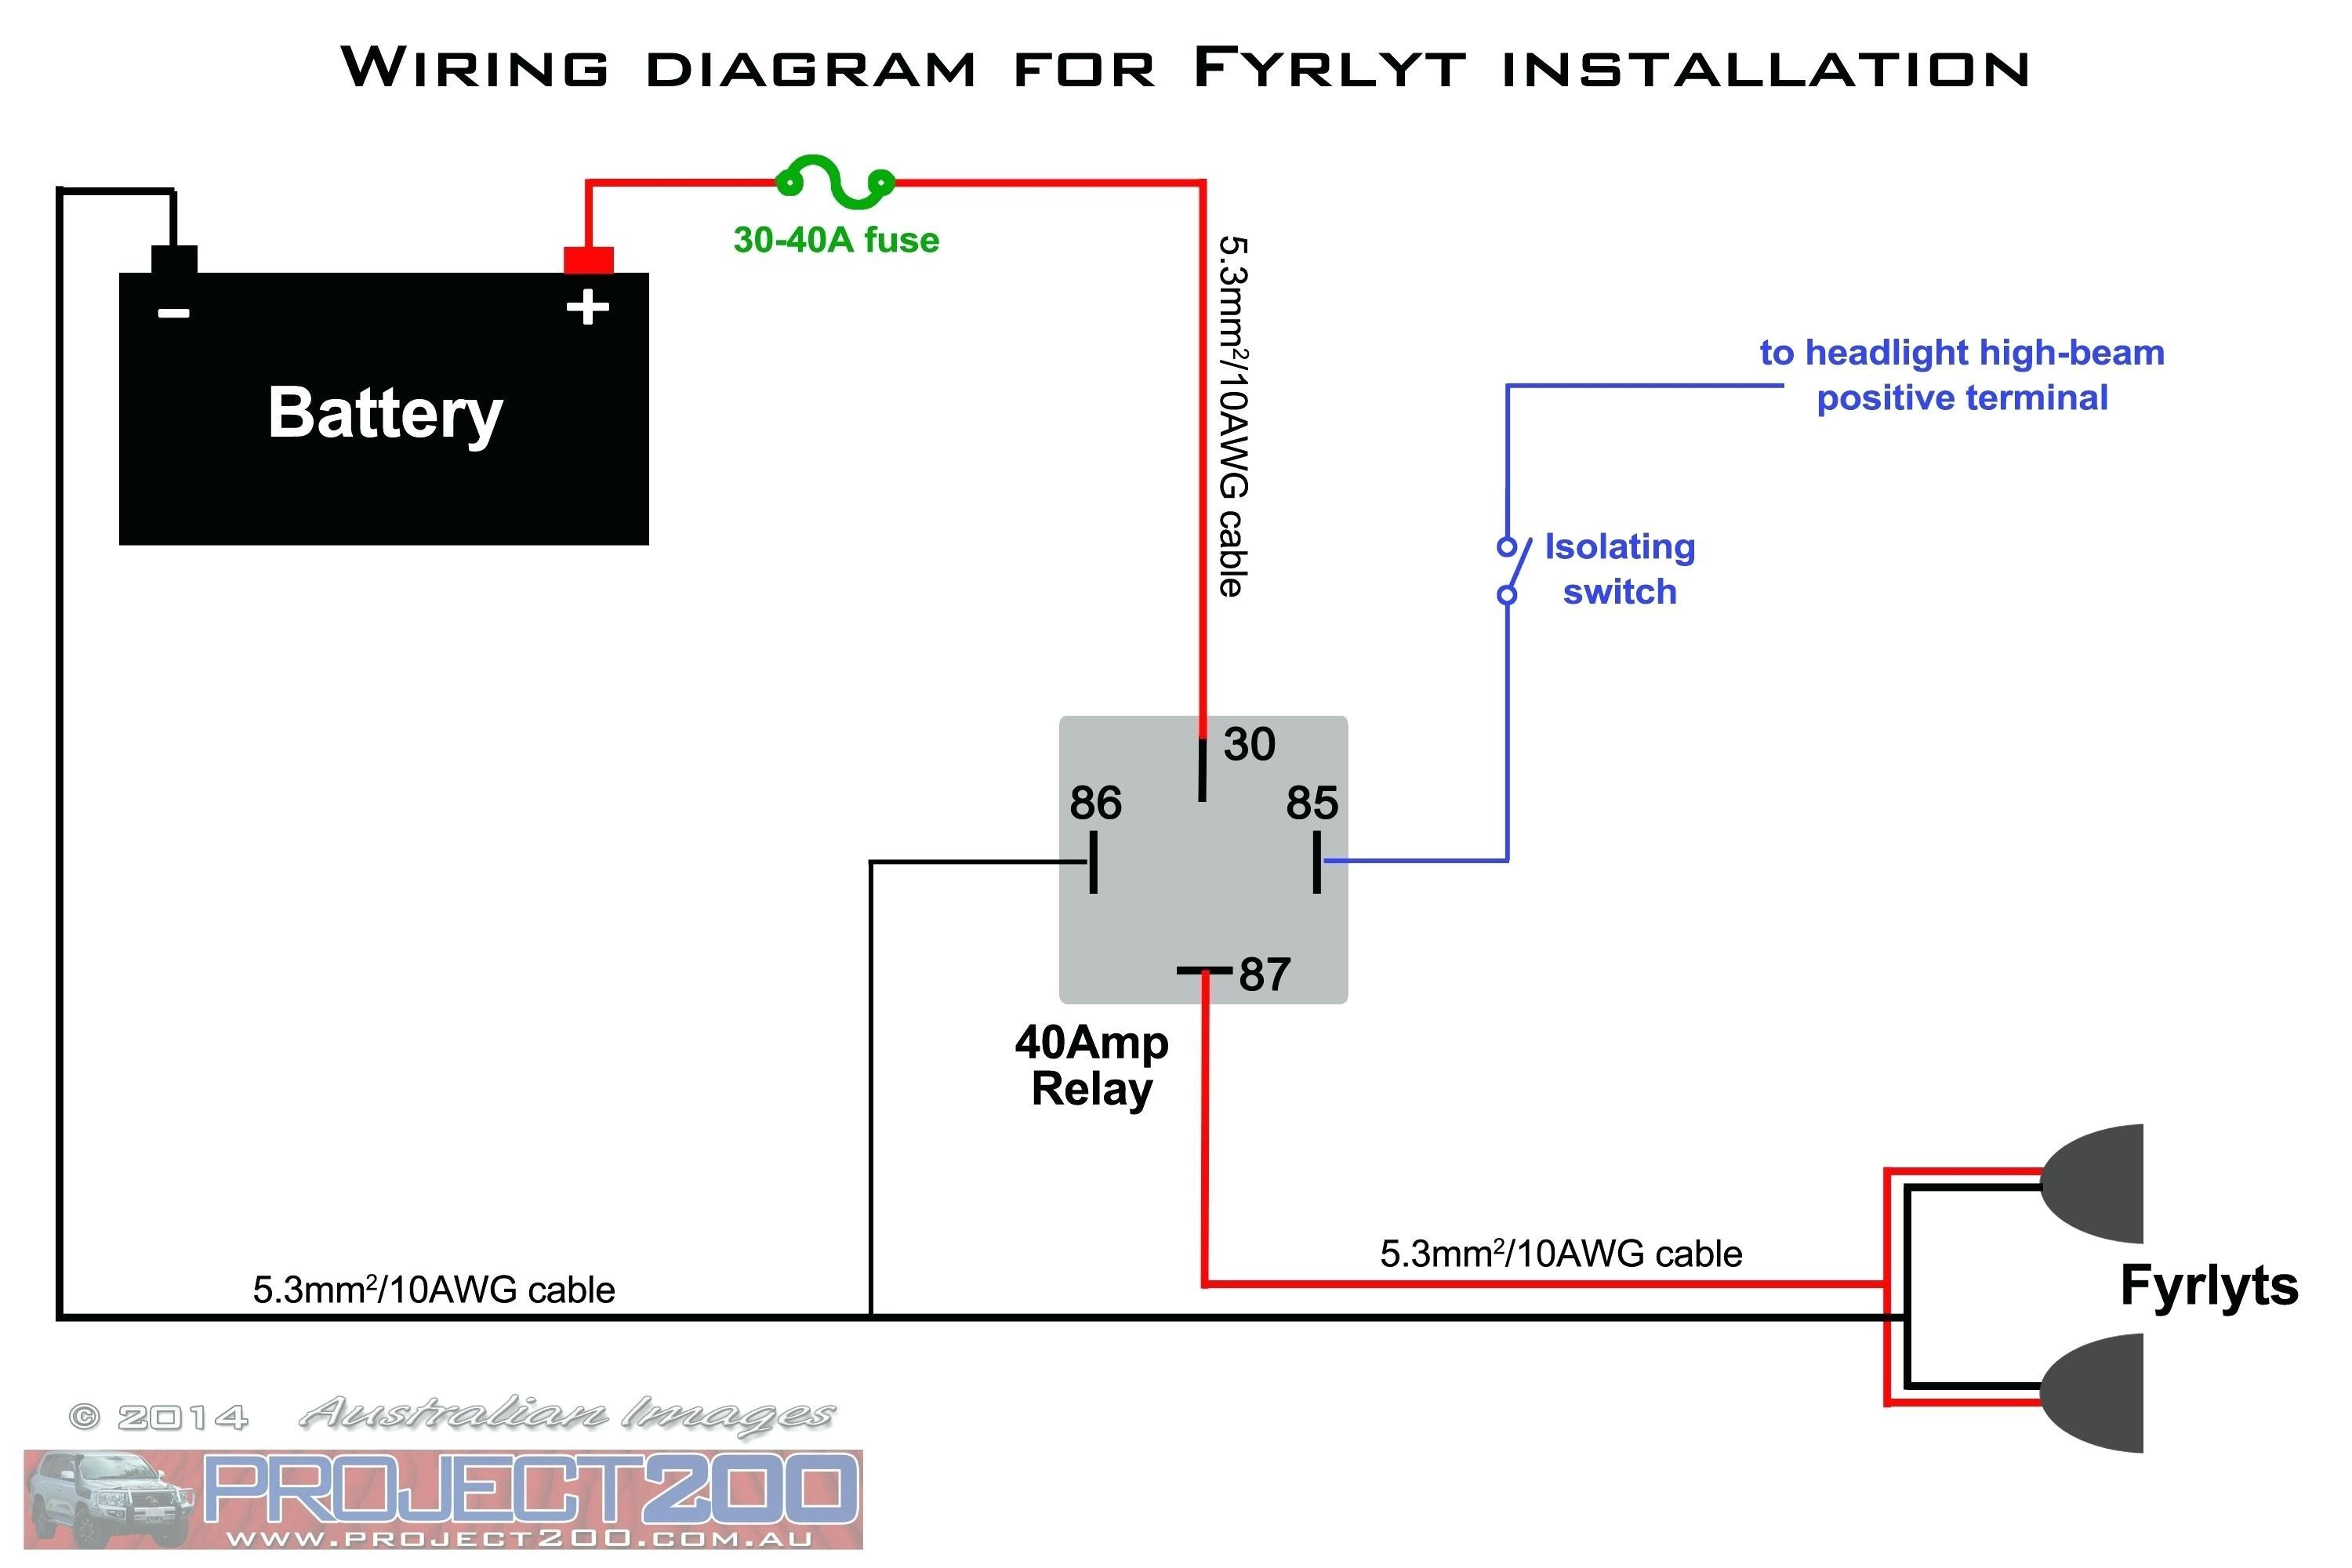 Hall Light Switch Wiring Diagram on circuit diagram, light switch with receptacle, electrical outlets diagram, light switch piping diagram, light switch cover, light switch timer, wall light switch diagram, light switch power diagram, light switch installation, light switch cabinet, dimmer switch installation diagram,